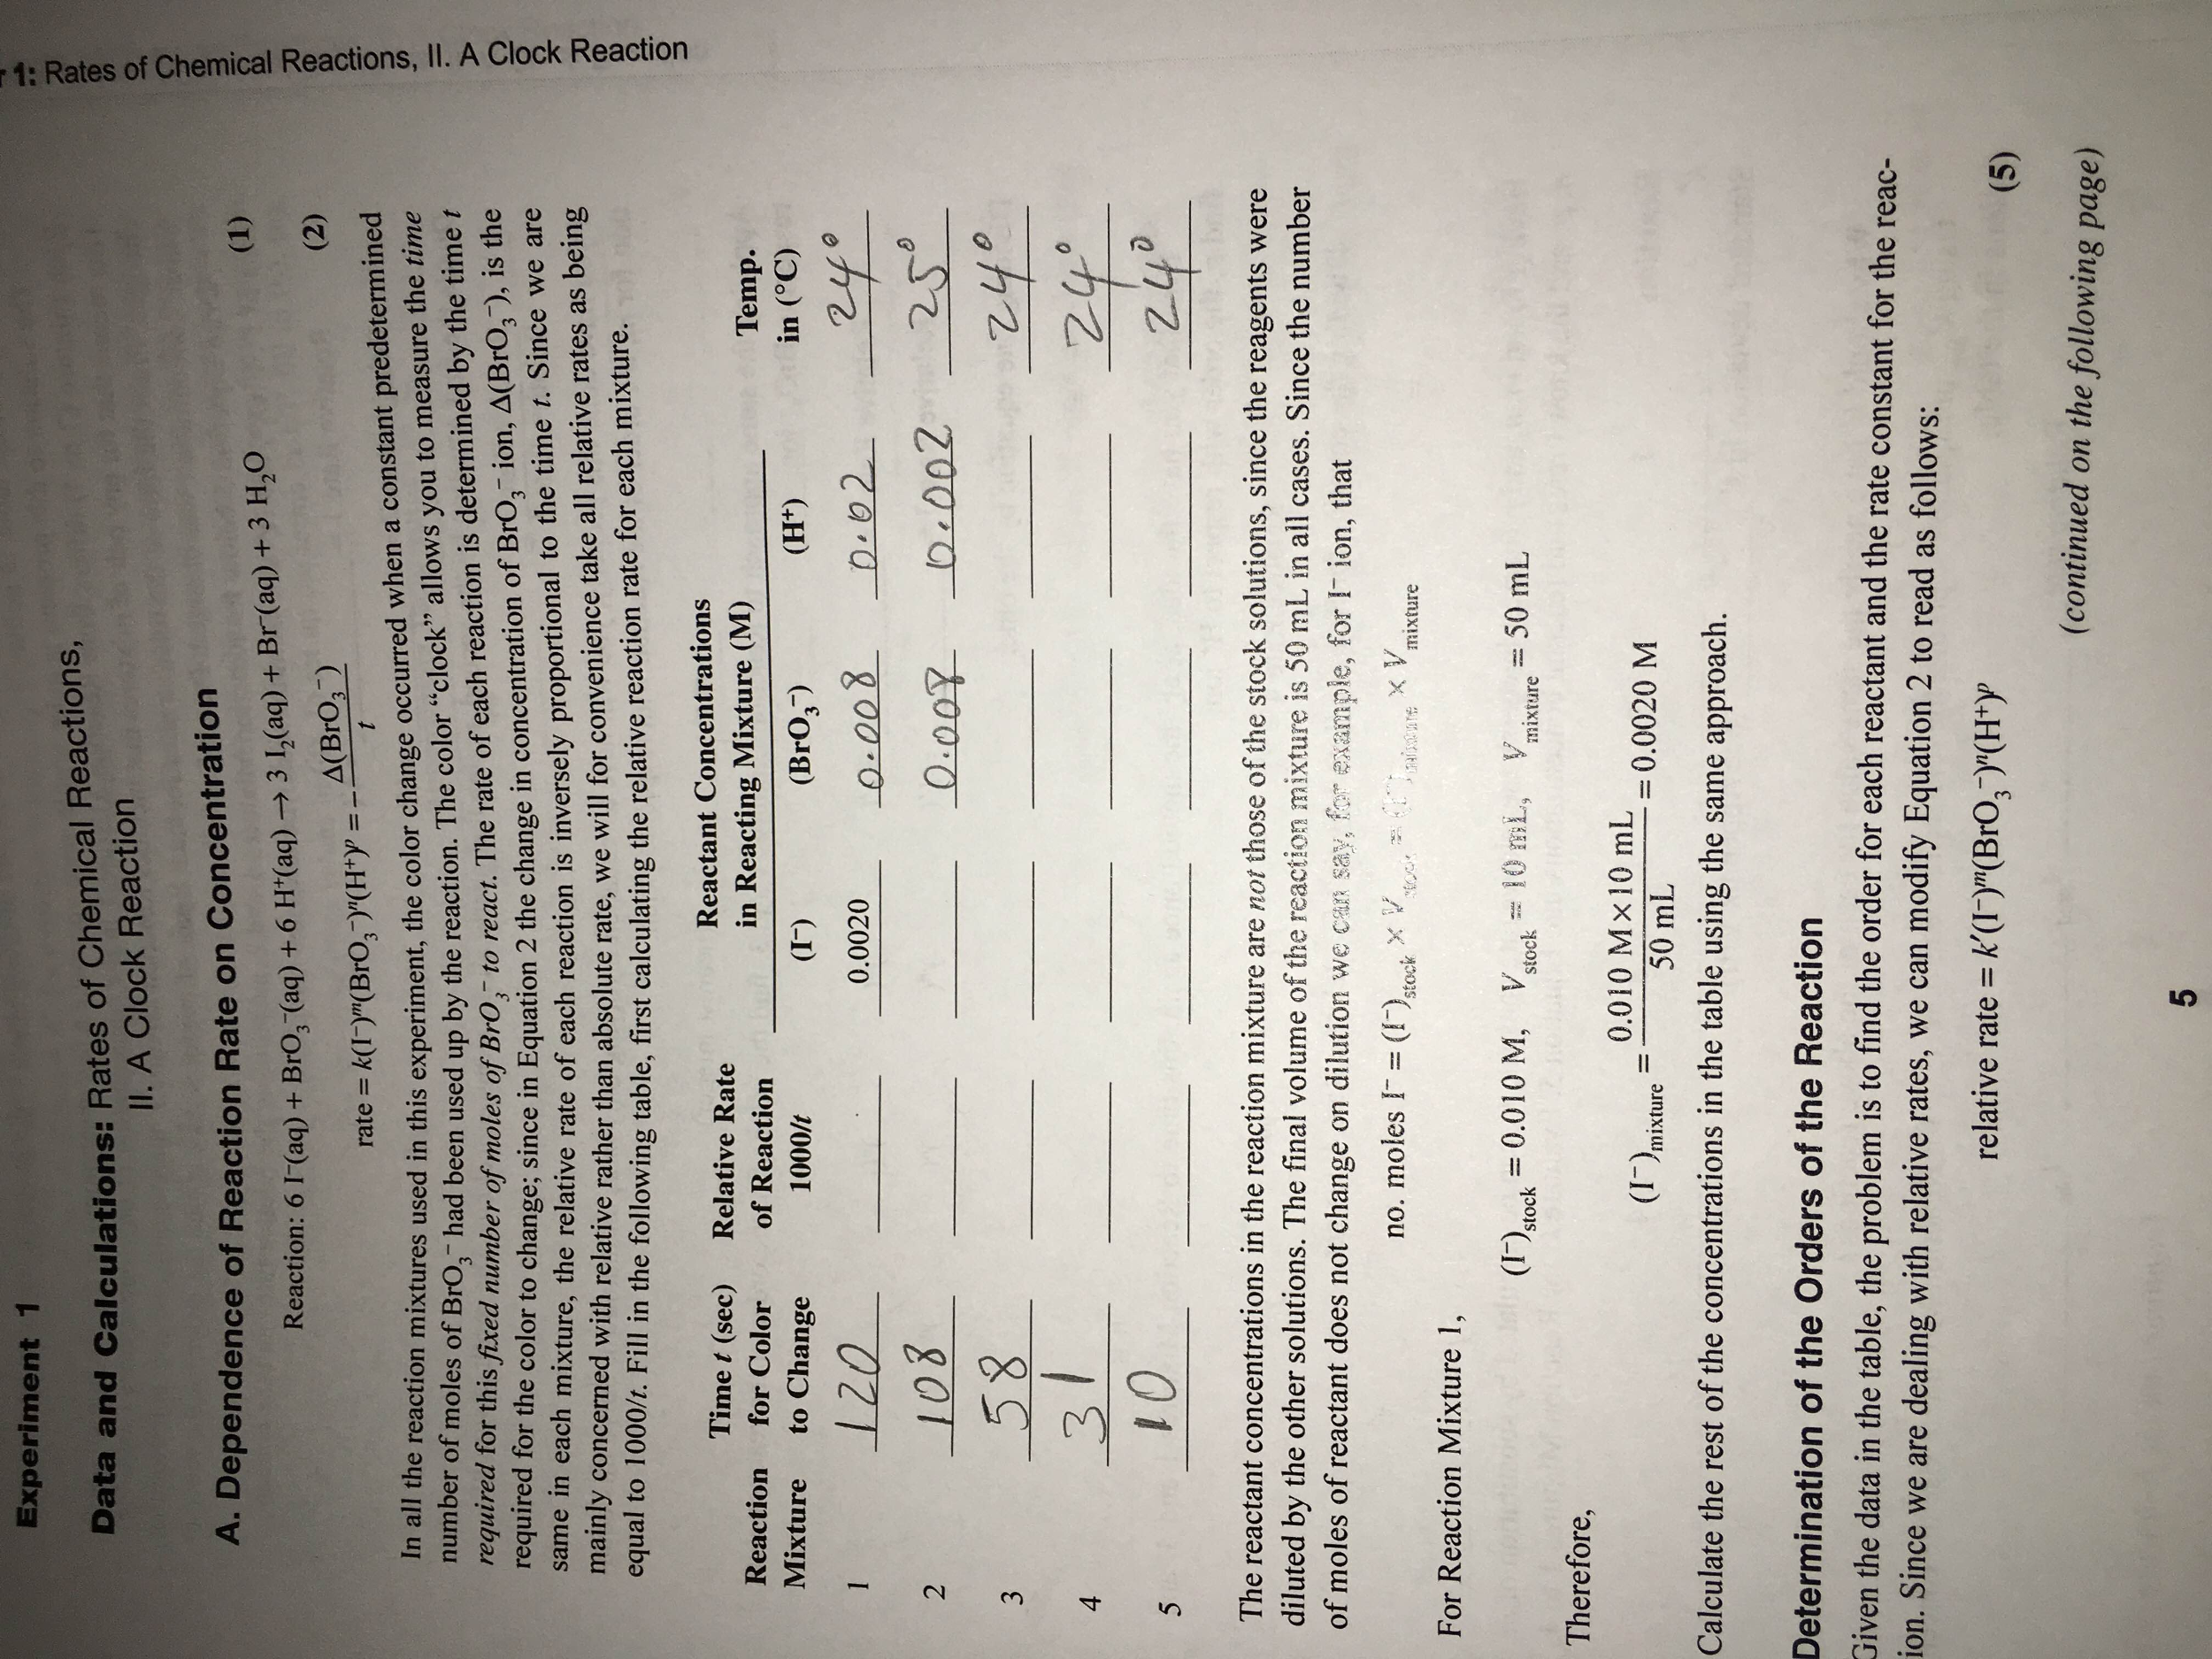 rates of chemical reactions ii 144 using graphs to determine rate laws, rate constants, and reaction  orders  given: balanced chemical equation, reaction times, and concentrations.